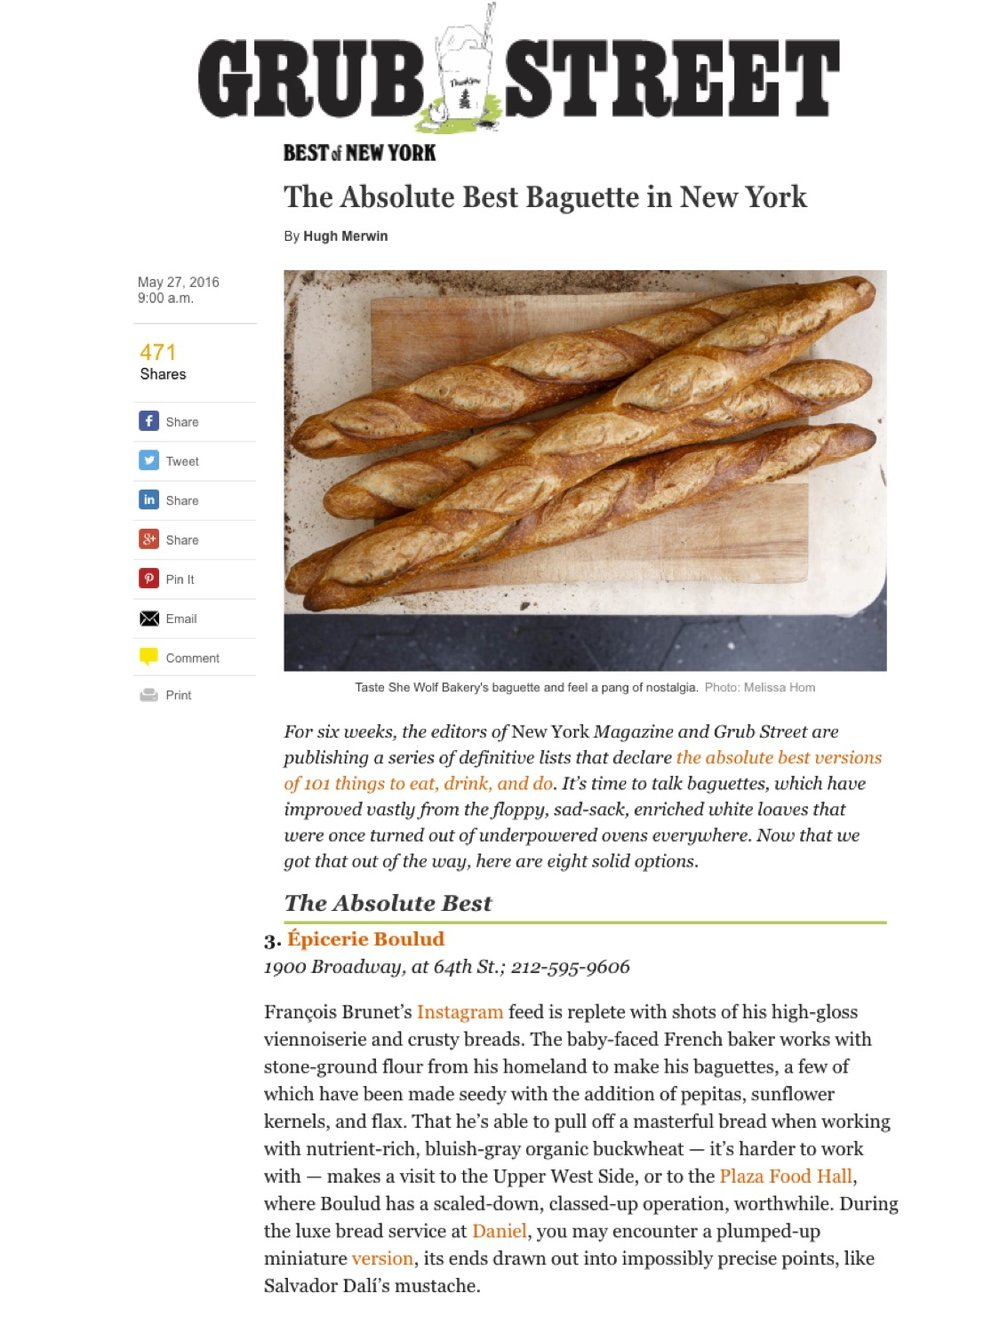 Epicerie Boulud - NY Mag, Best Baguette in NYC May 2016.jpg